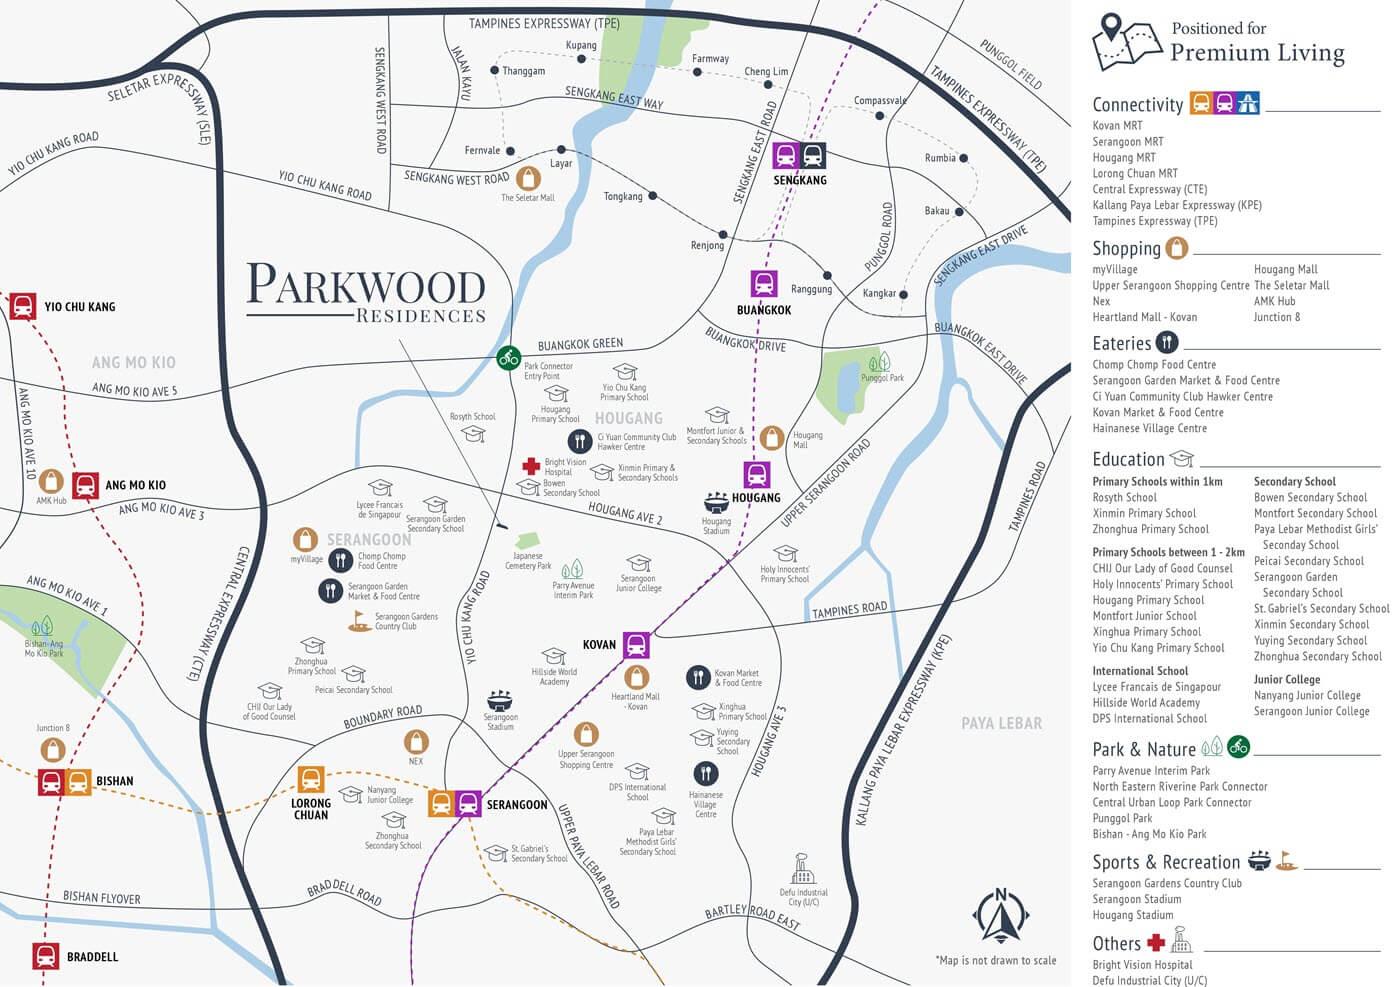 Parkwood Residences Condo Location Map